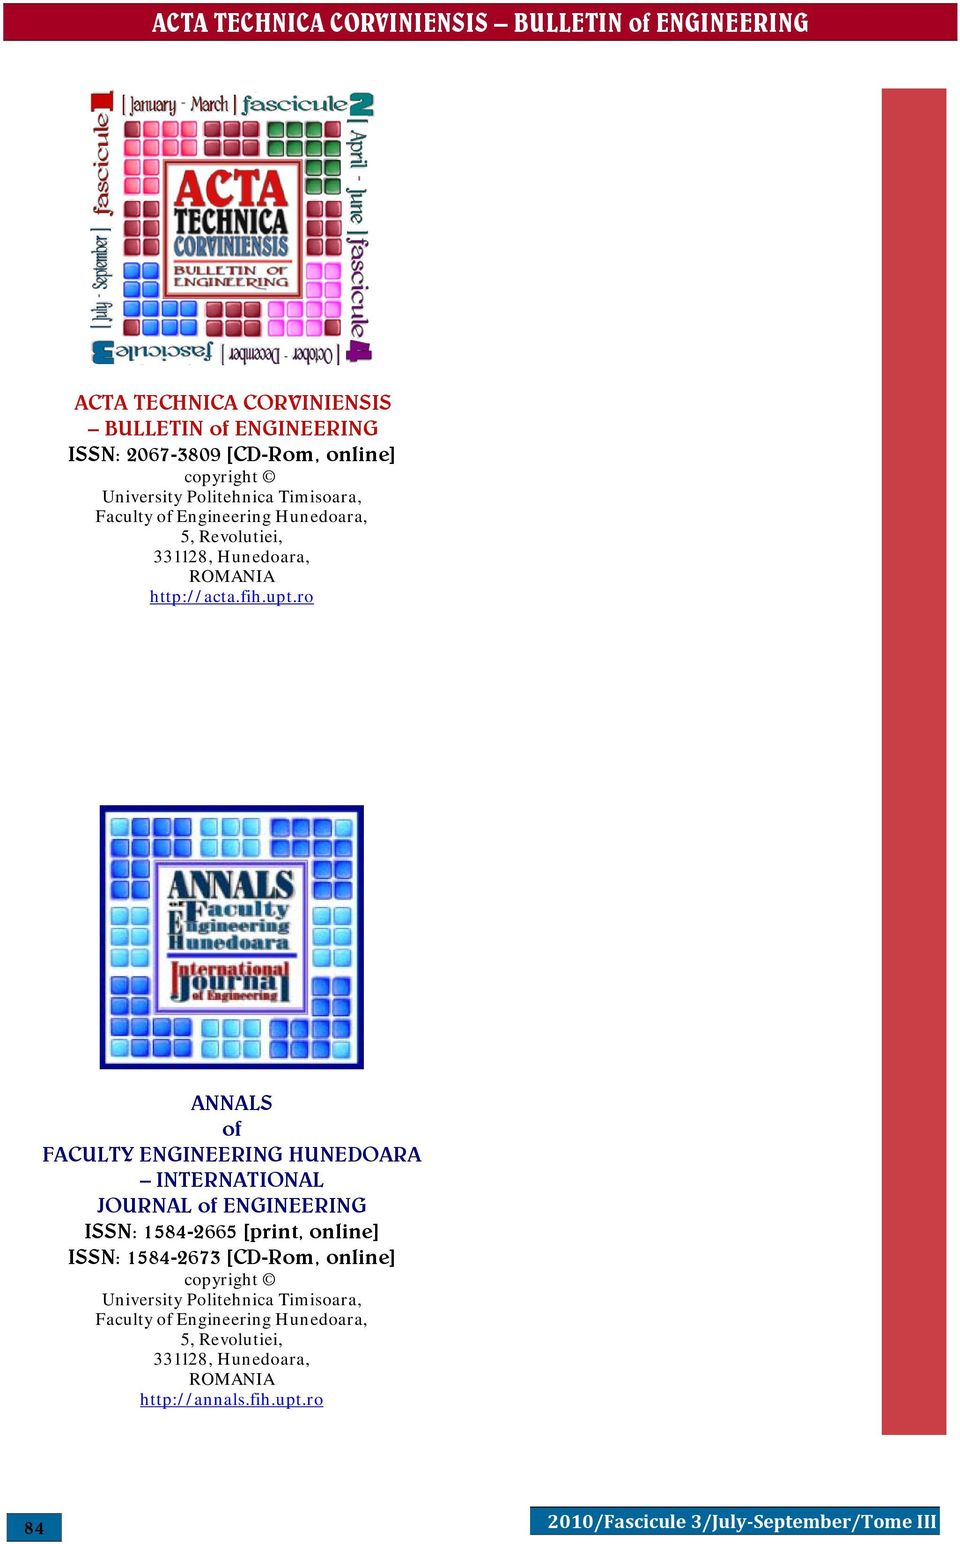 ro ANNALS of FACULTY ENGINEERING HUNEDOARA INTERNATIONAL JOURNAL of ENGINEERING ISSN: 1584-2665 [print, online] ISSN: 1584-2673 [CD-Rom,